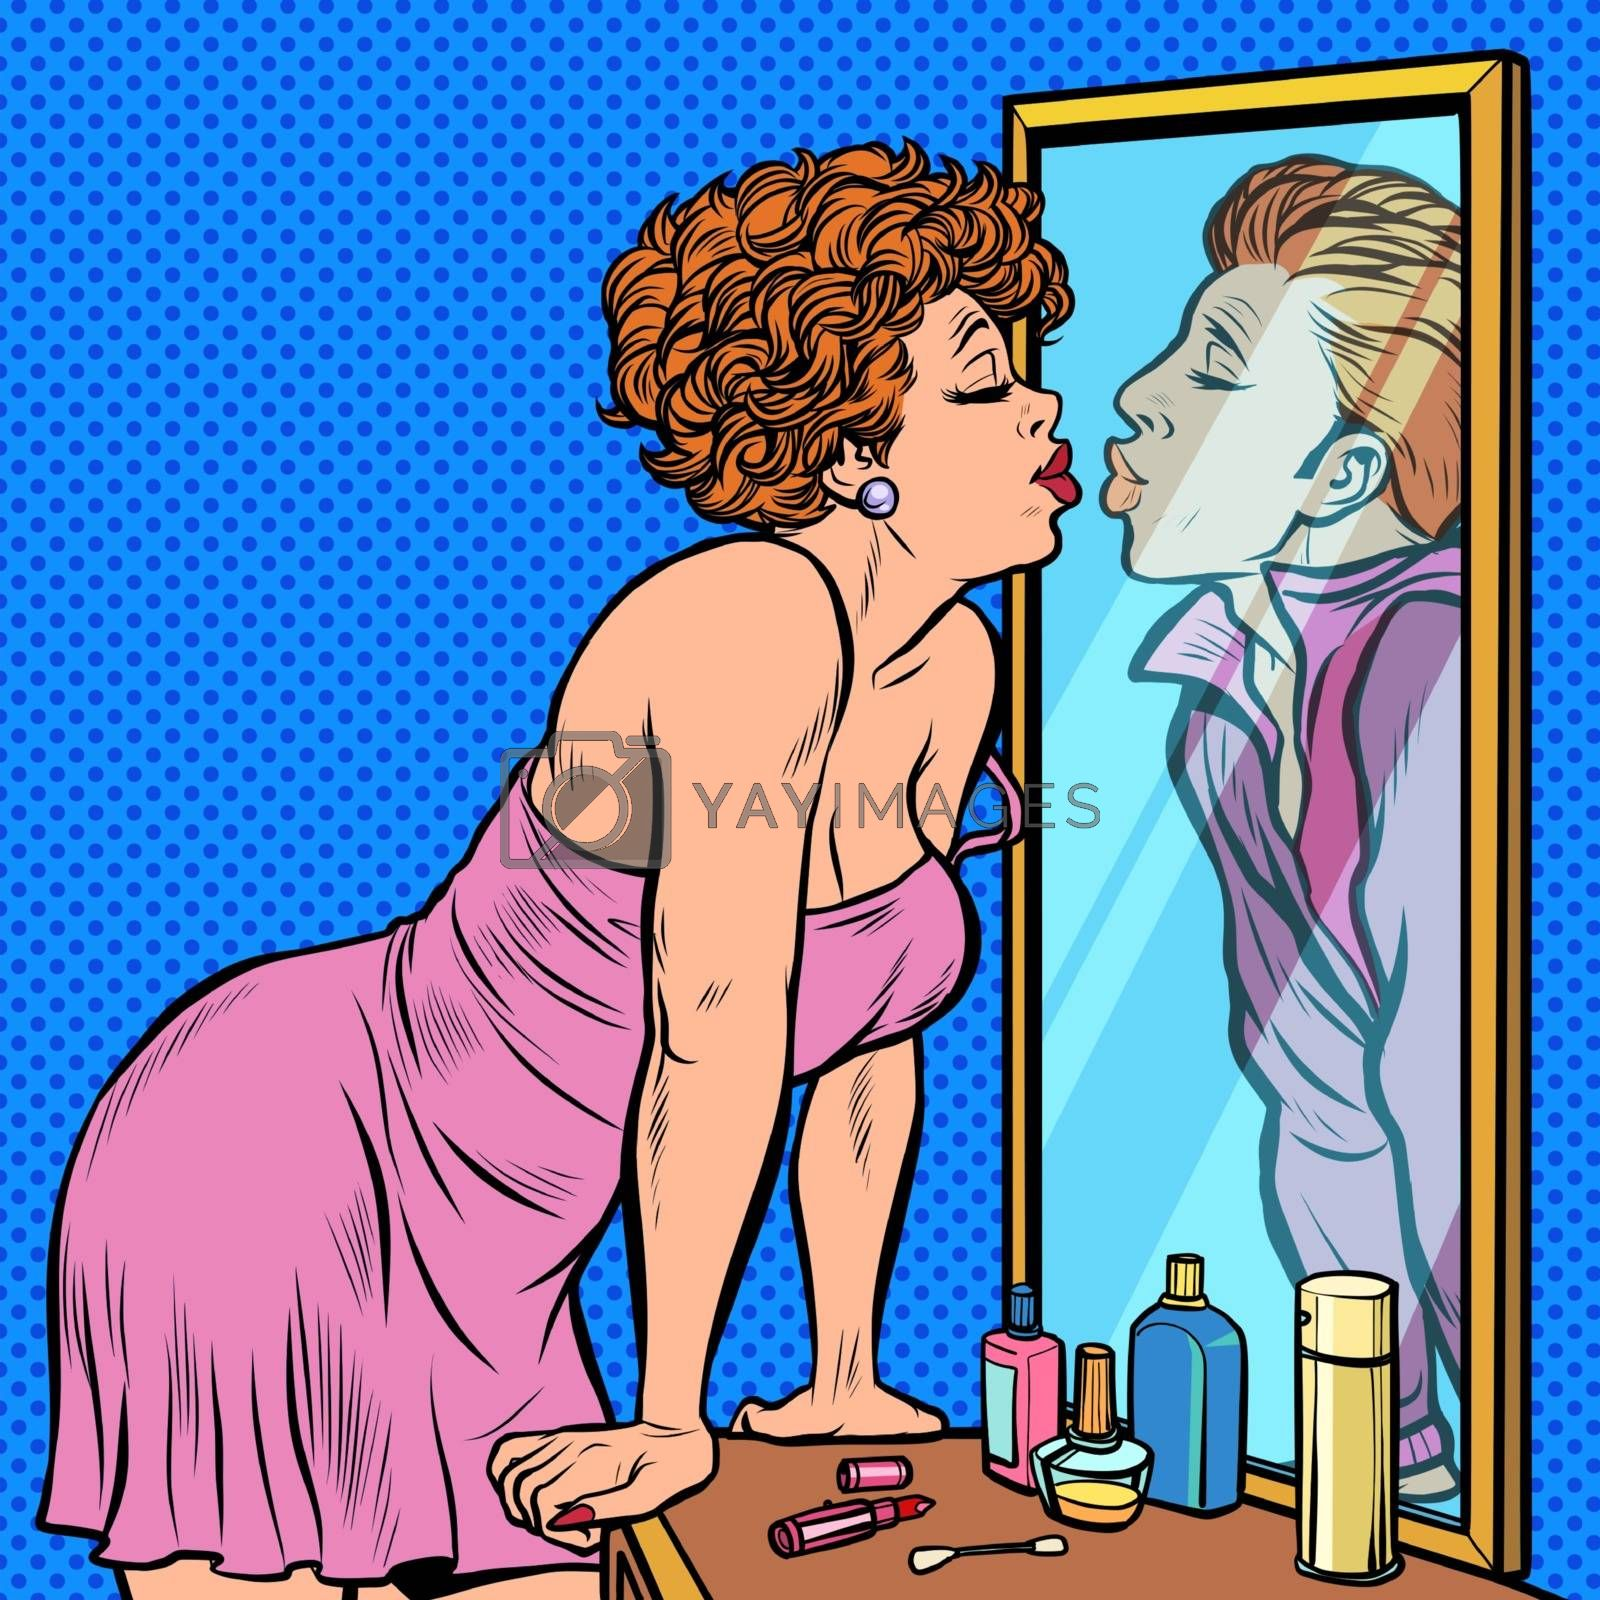 a woman kisses a man, the reflection in the mirror, dream by studiostoks